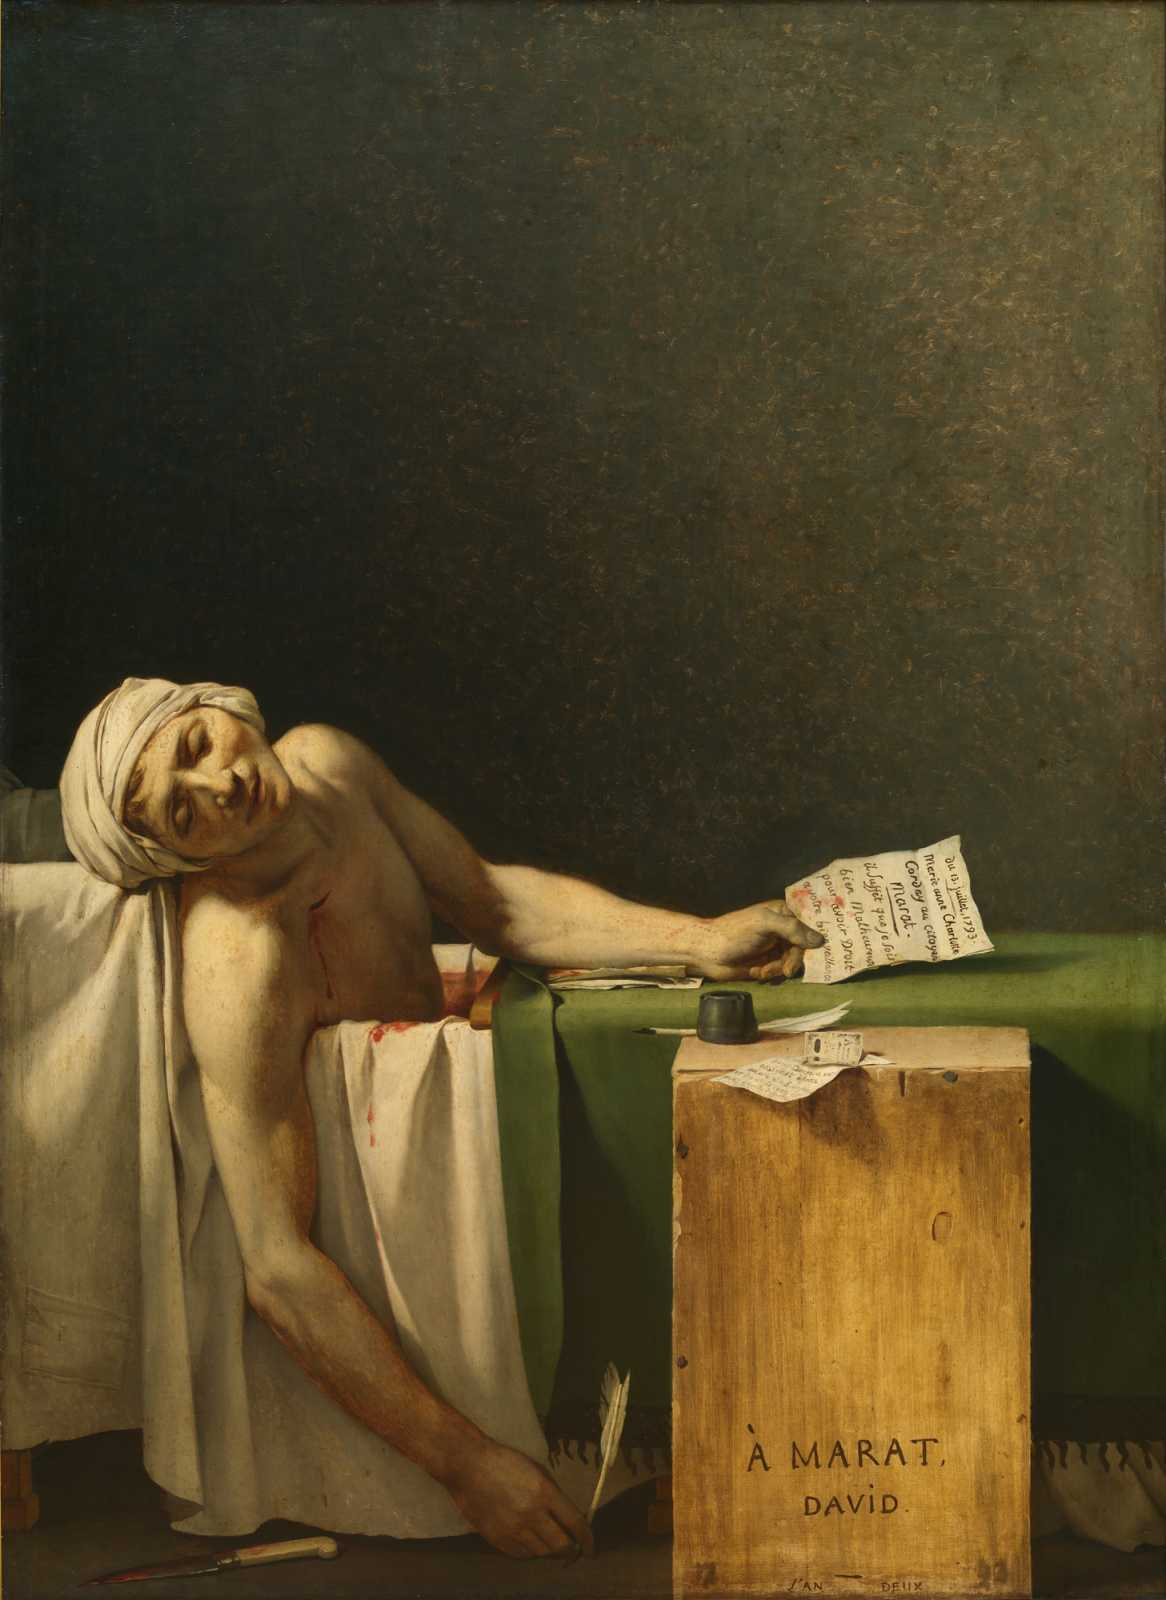 The Death of Marat (1793) by Jacques-Louis David